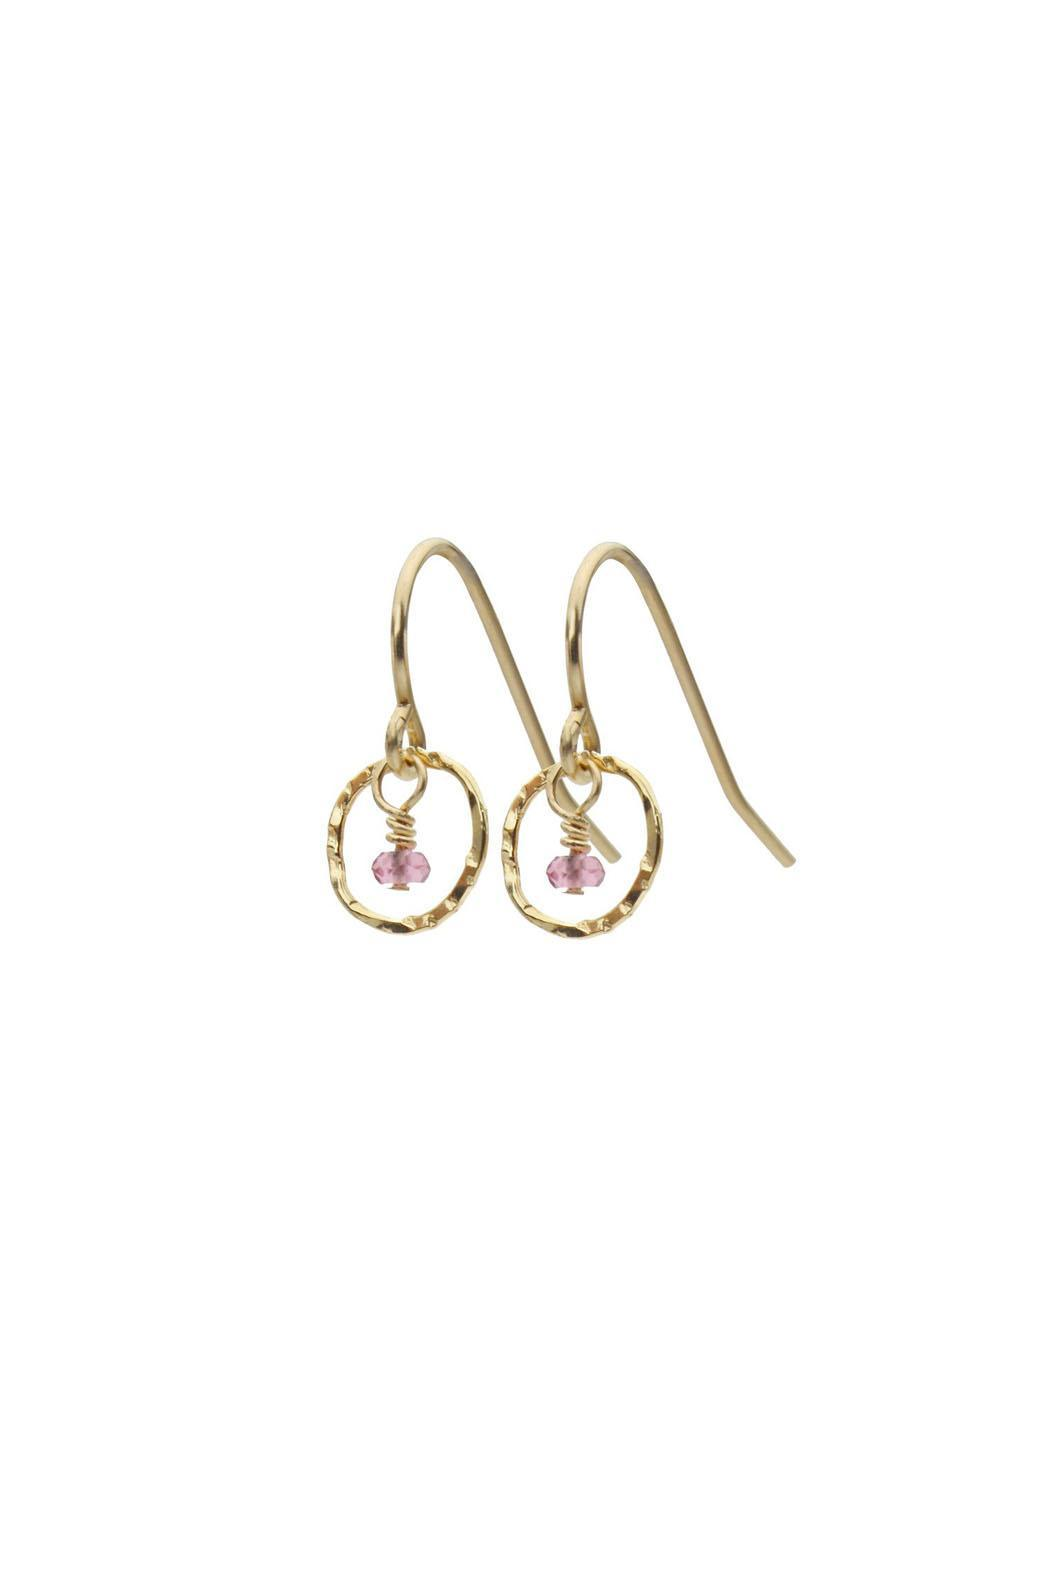 Sara Danielle Tiny Tourmaline Earrings from Oregon by